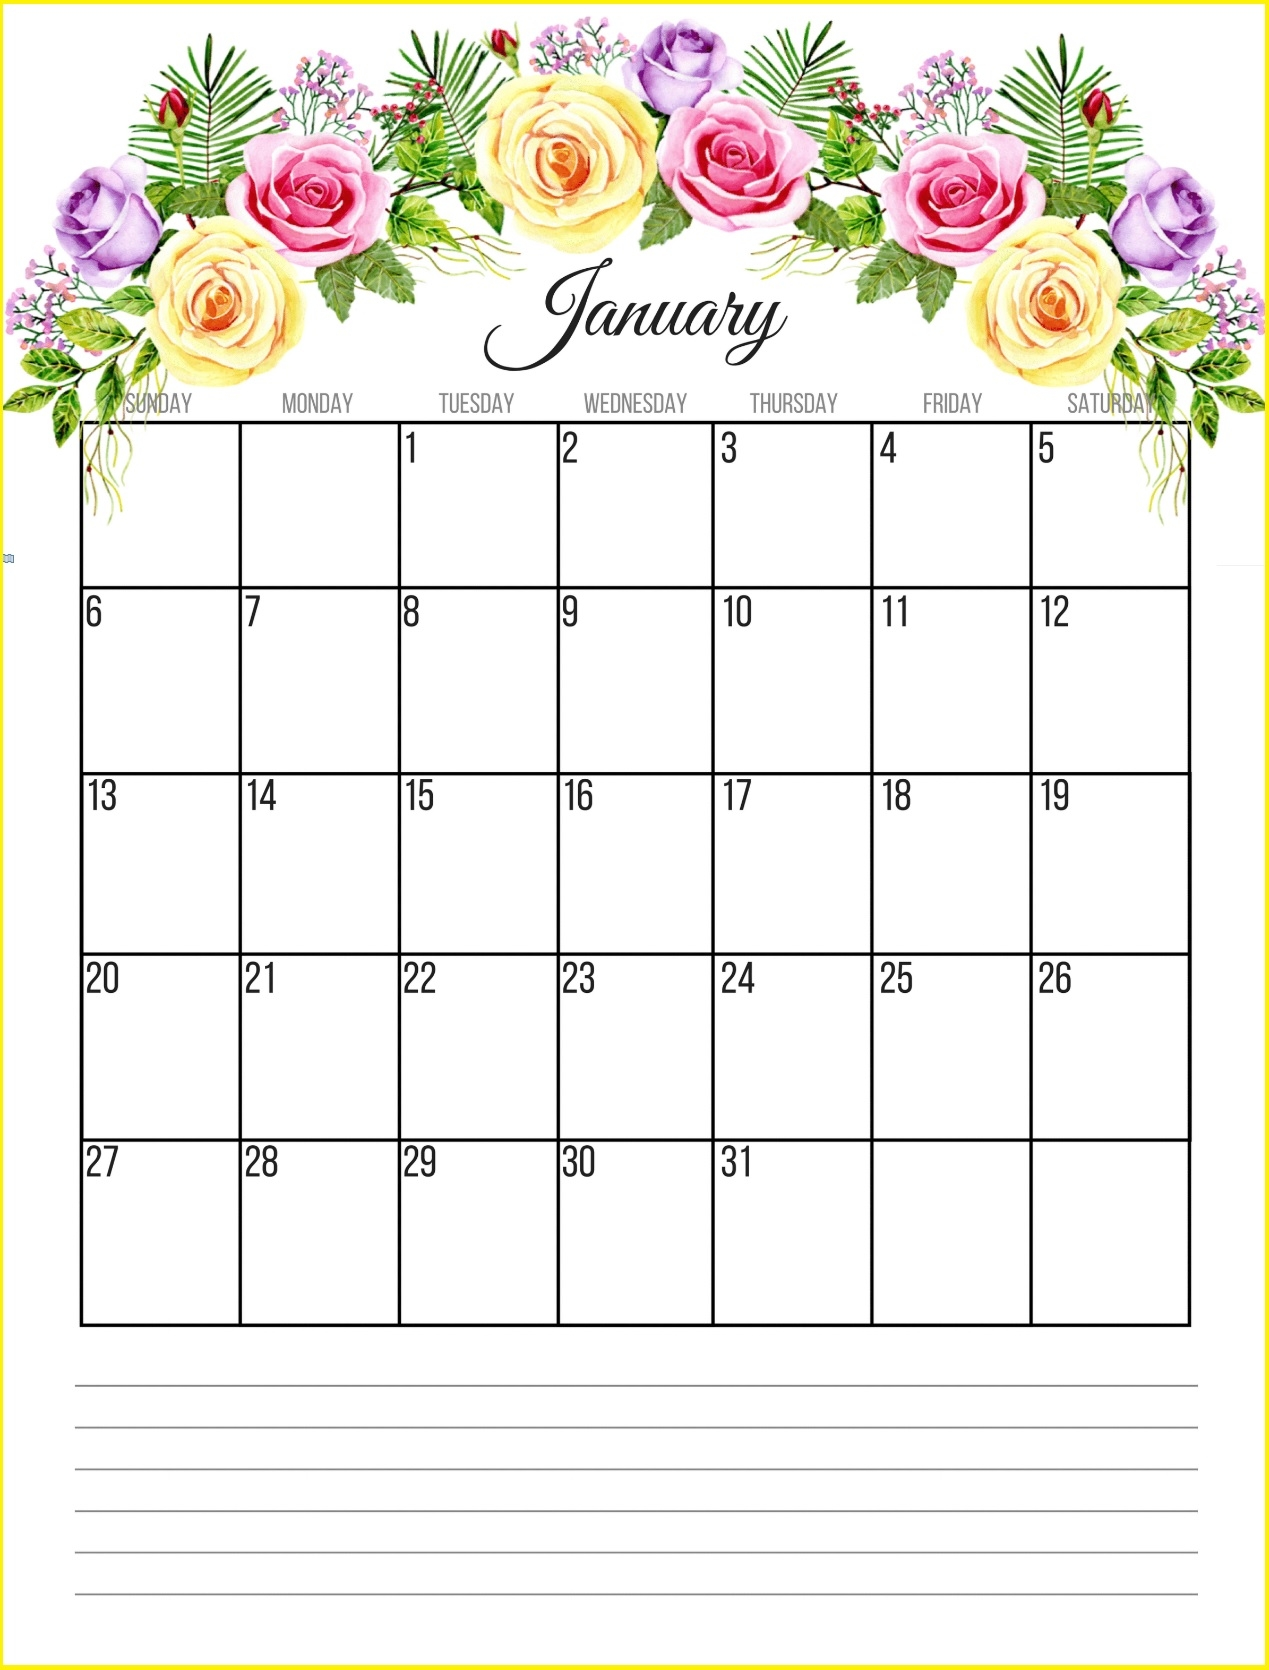 printable floral 2019 monthly calendar calendar 2019::January 2019 Monthly Calendar